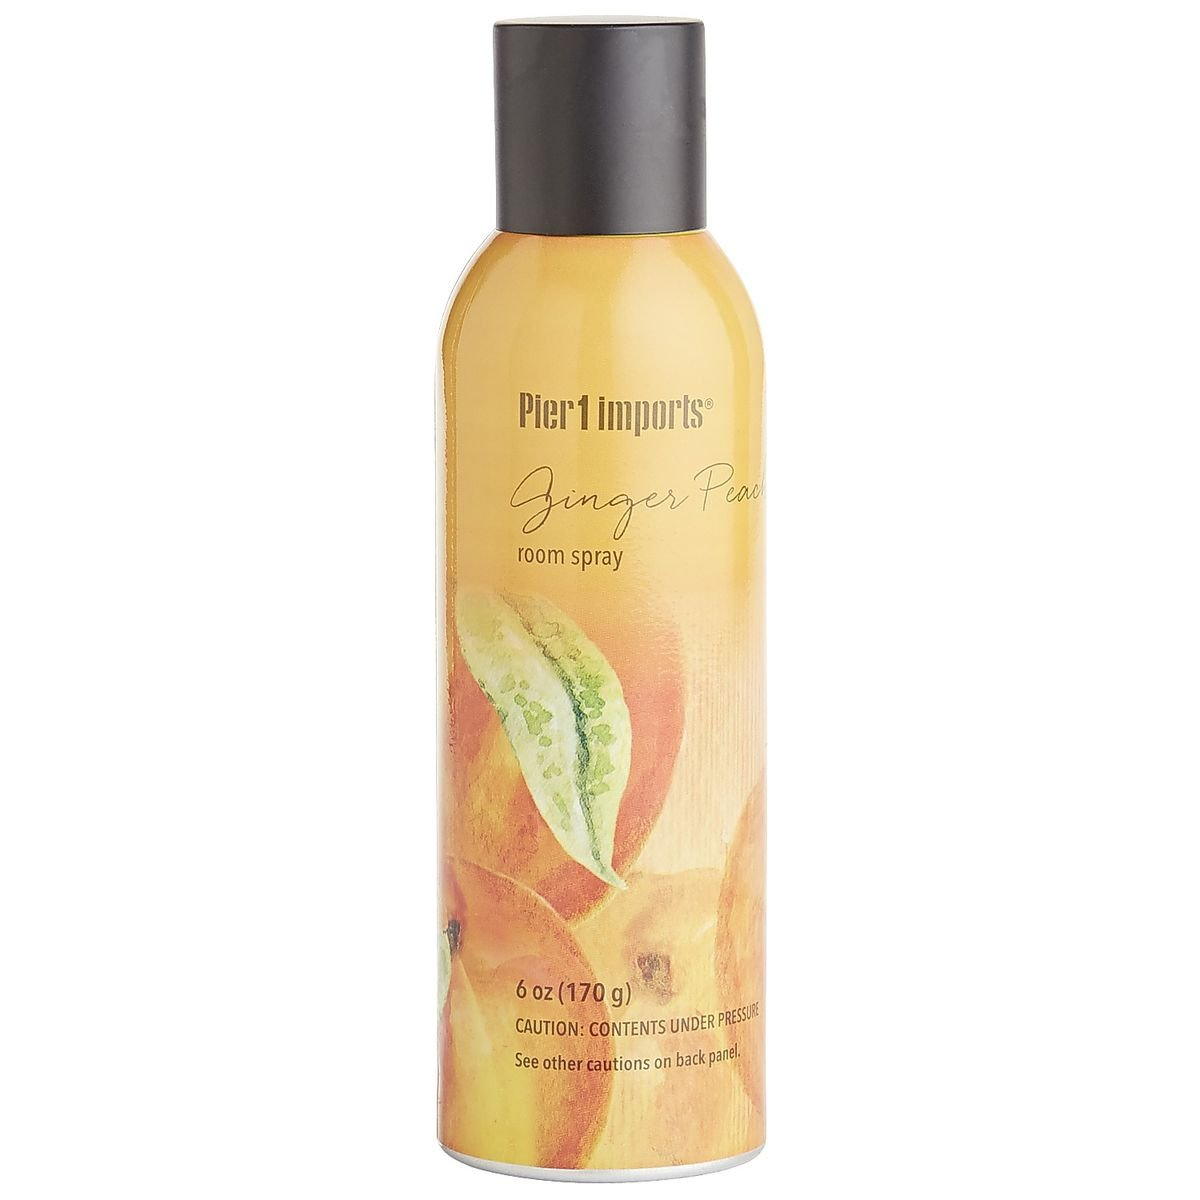 Amazon.com: pier 1 imports Room Spray (Citrus Cilantro): Home & Kitchen